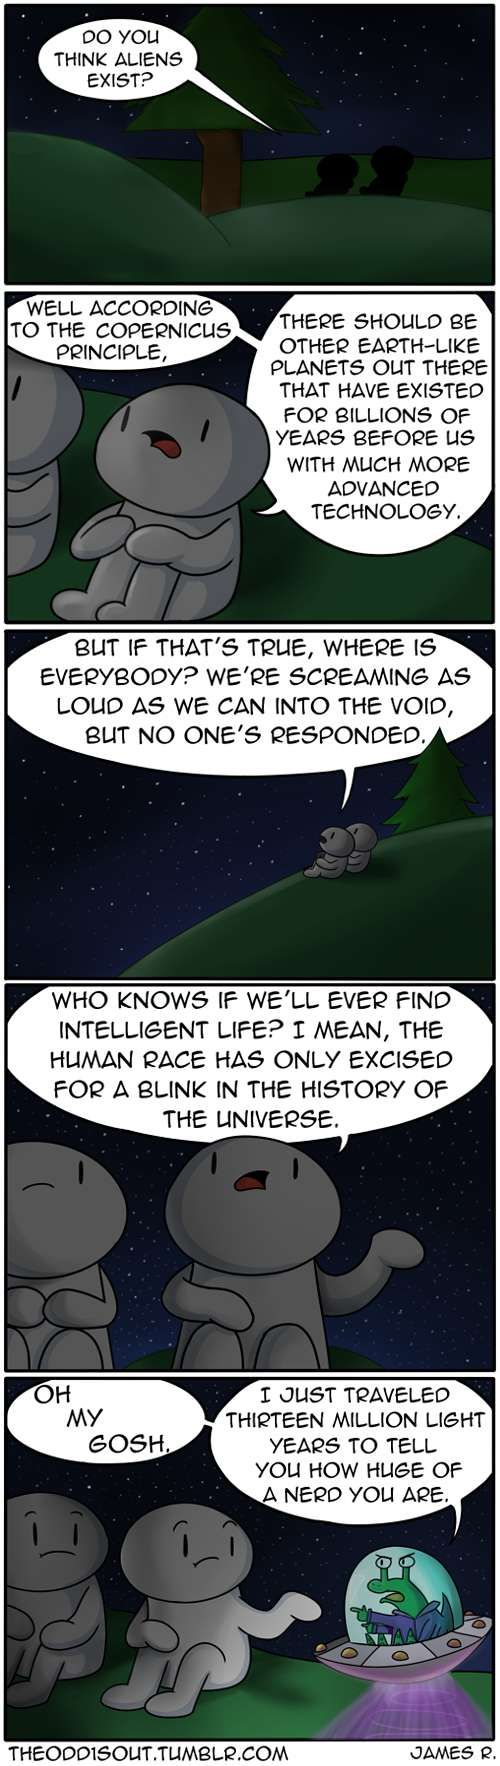 Theodd1sout :: Do You Think Aliens Exist?   Tapastic Comics - image 1